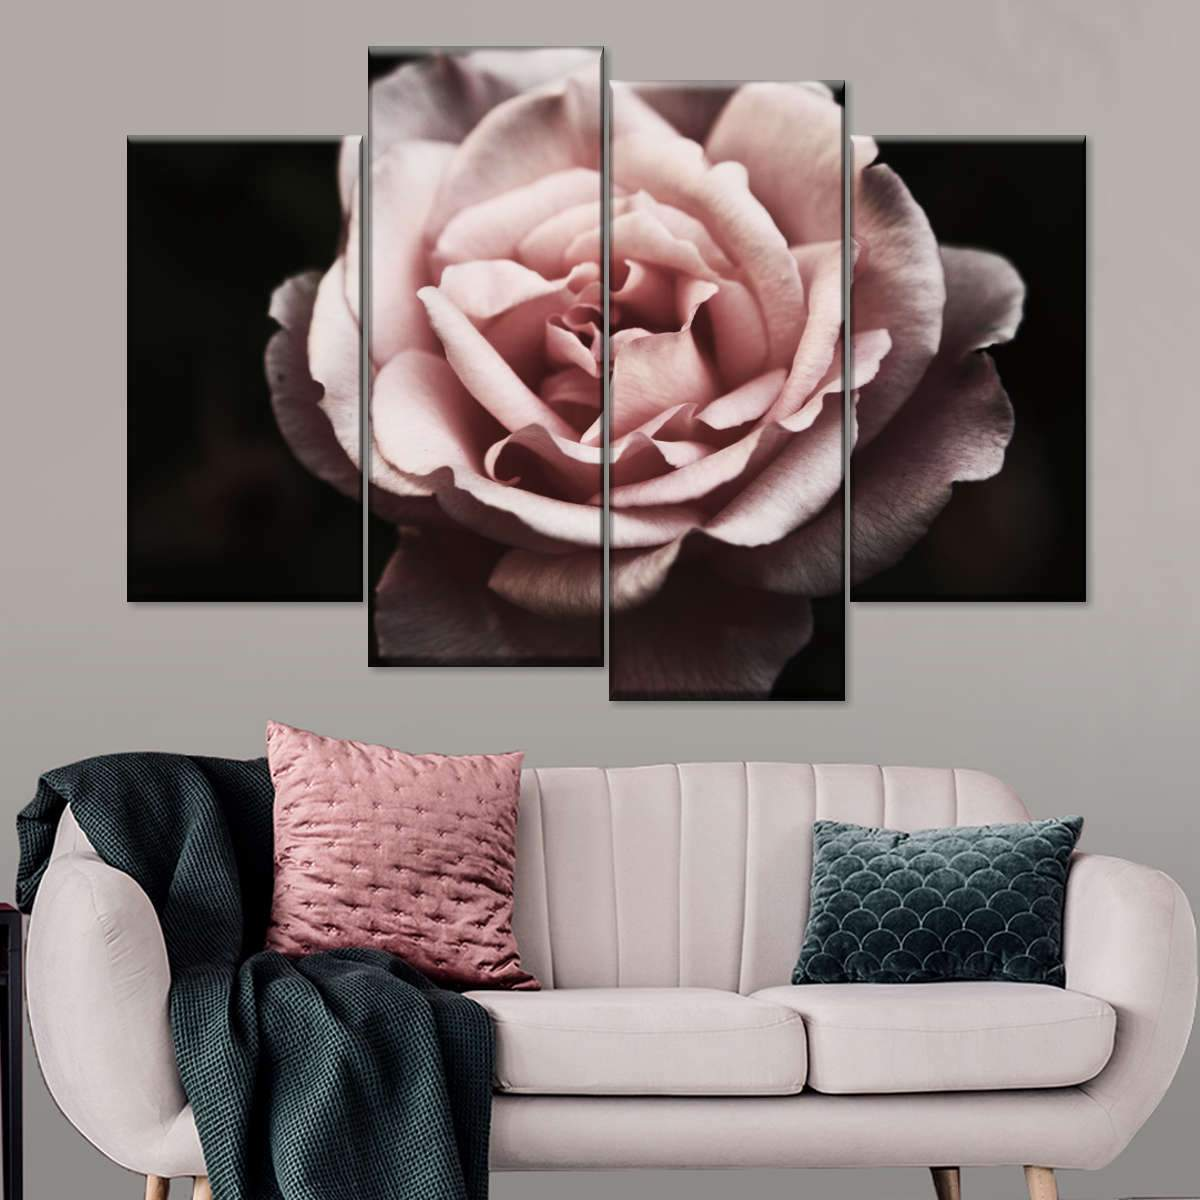 Withering Carnation Rose Multi Panel Canvas Wall Art